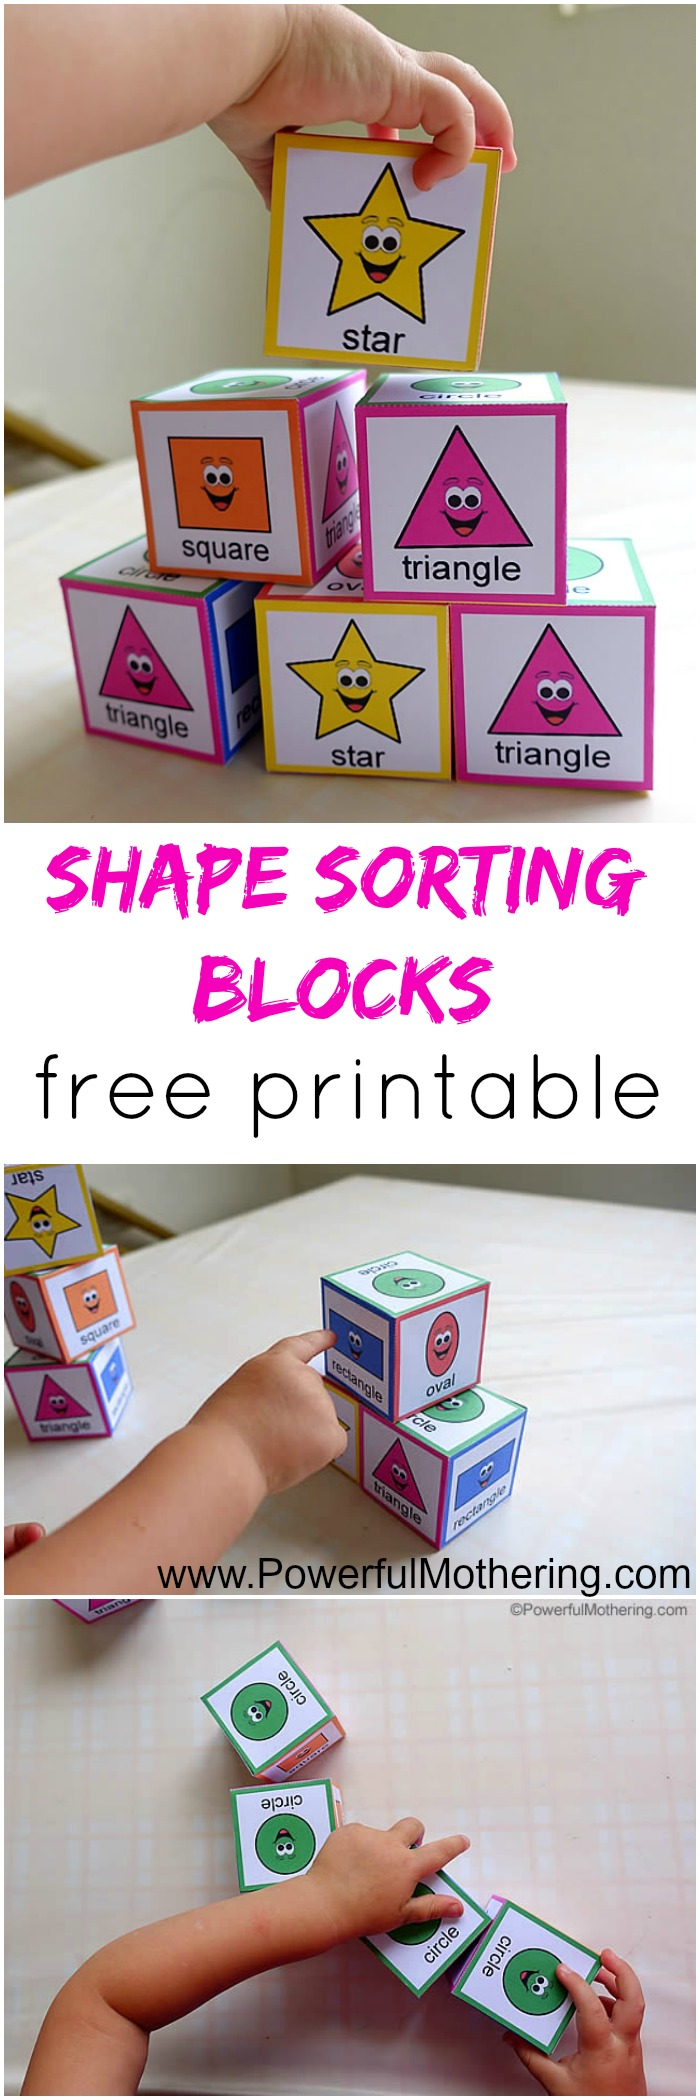 shape sorting blocks with free printable from PowerfulMothering.com